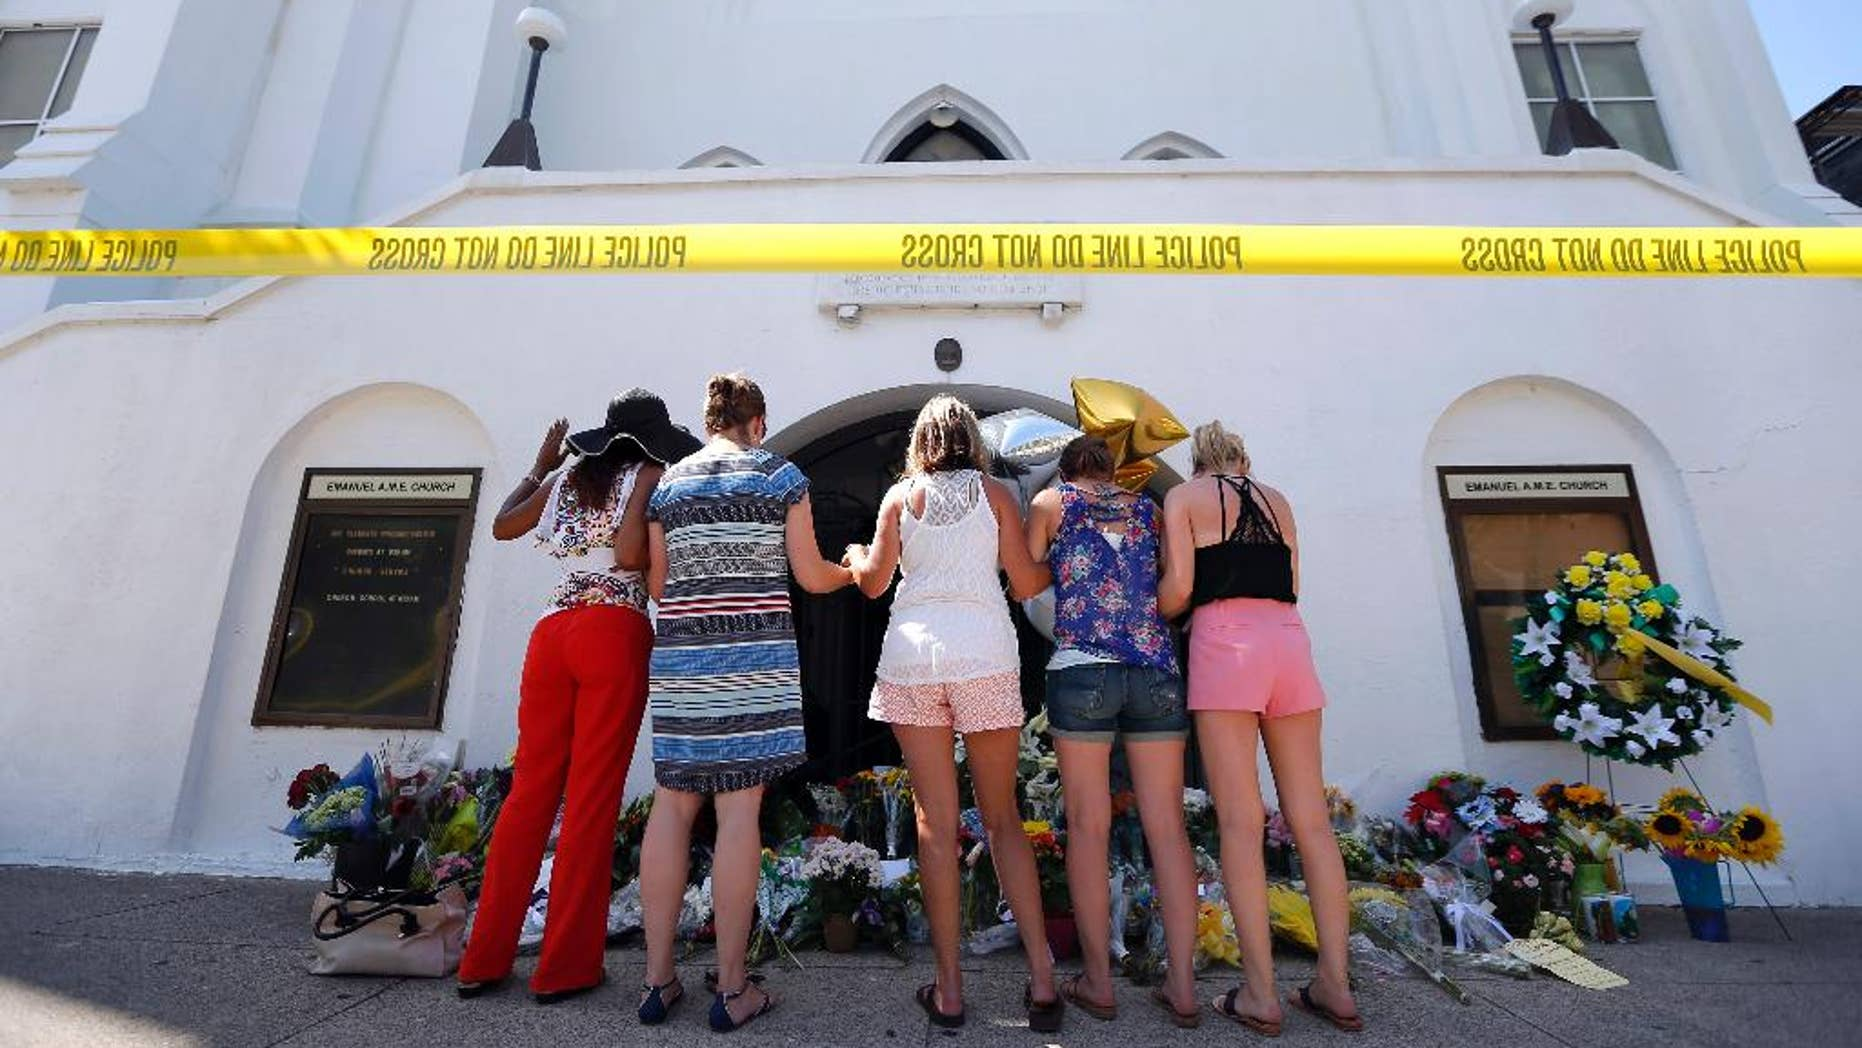 June 18, 2015: A group of women pray together at a makeshift memorial on the sidewalk in front of the Emanuel AME Church in Charleston, S.C.